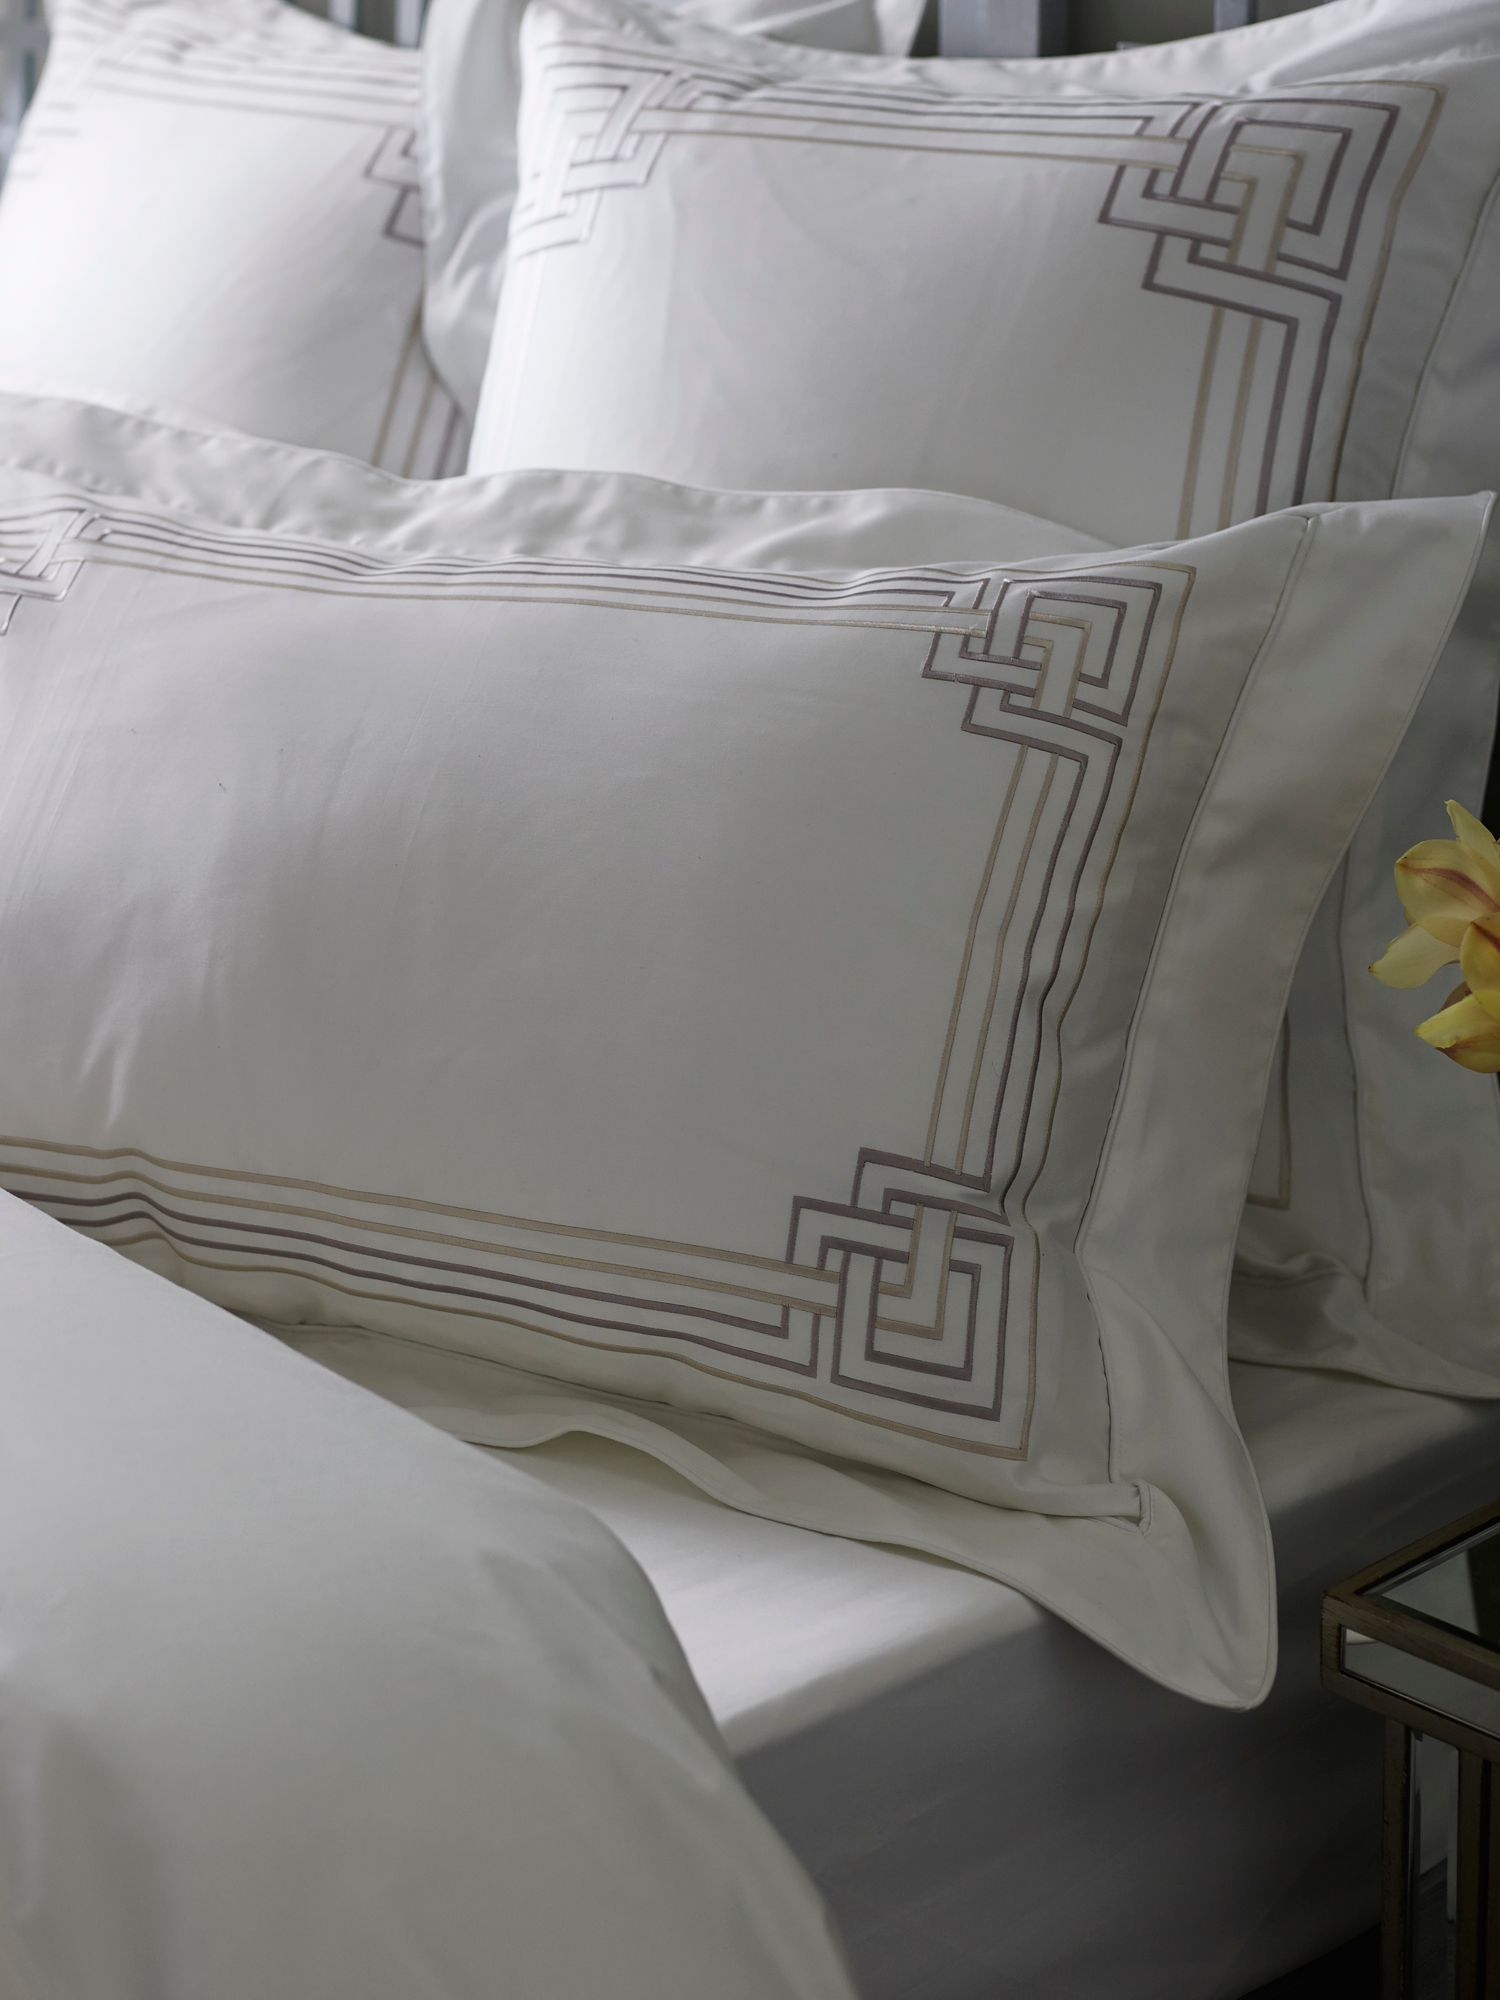 Vaughan peat bed linen